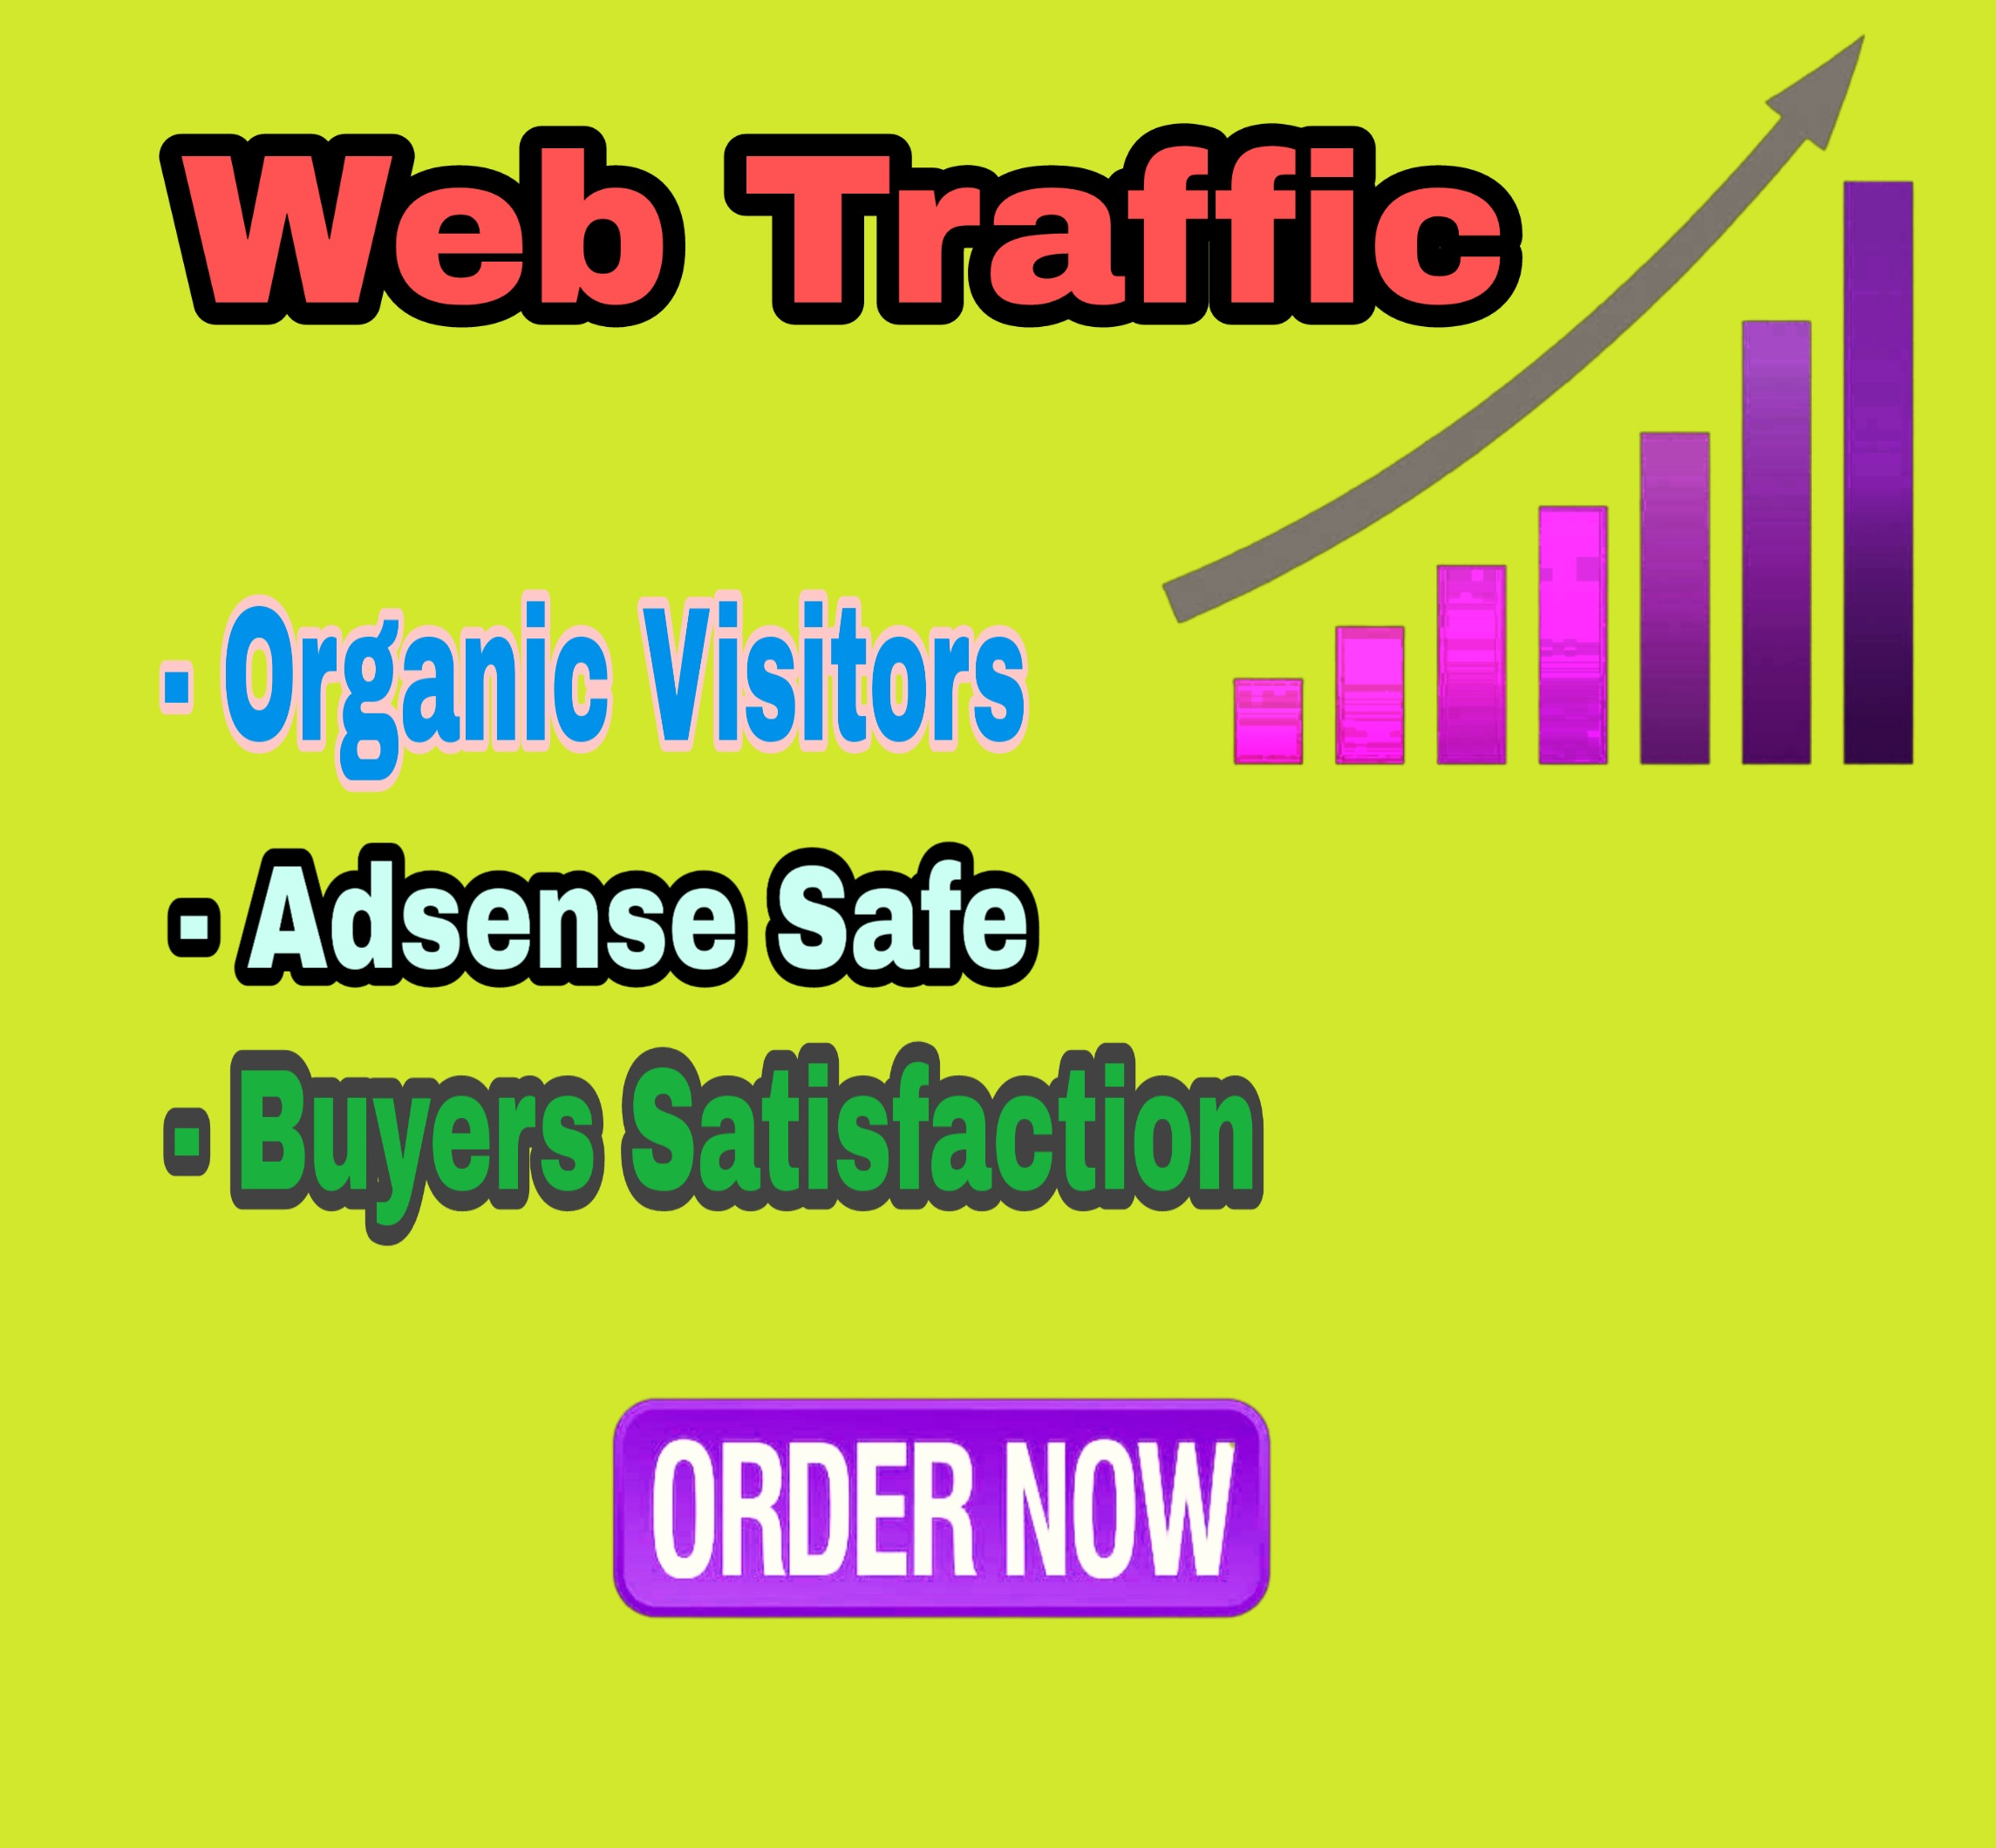 I can drive 1000 organic web traffic with low bounce rate